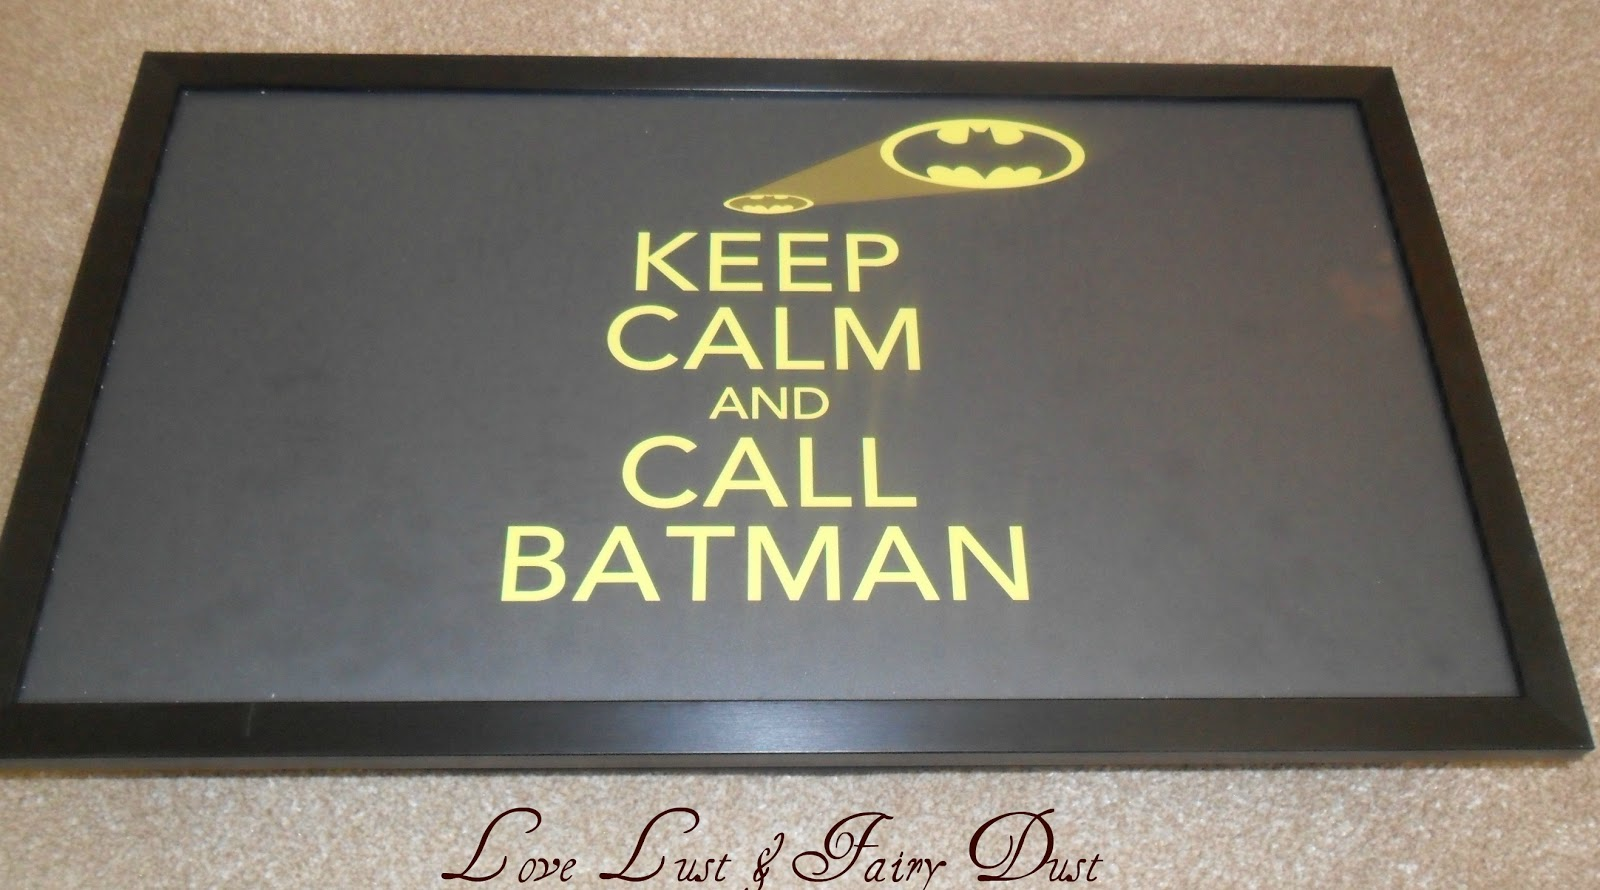 keep calm and call batman laptop tray from Kico